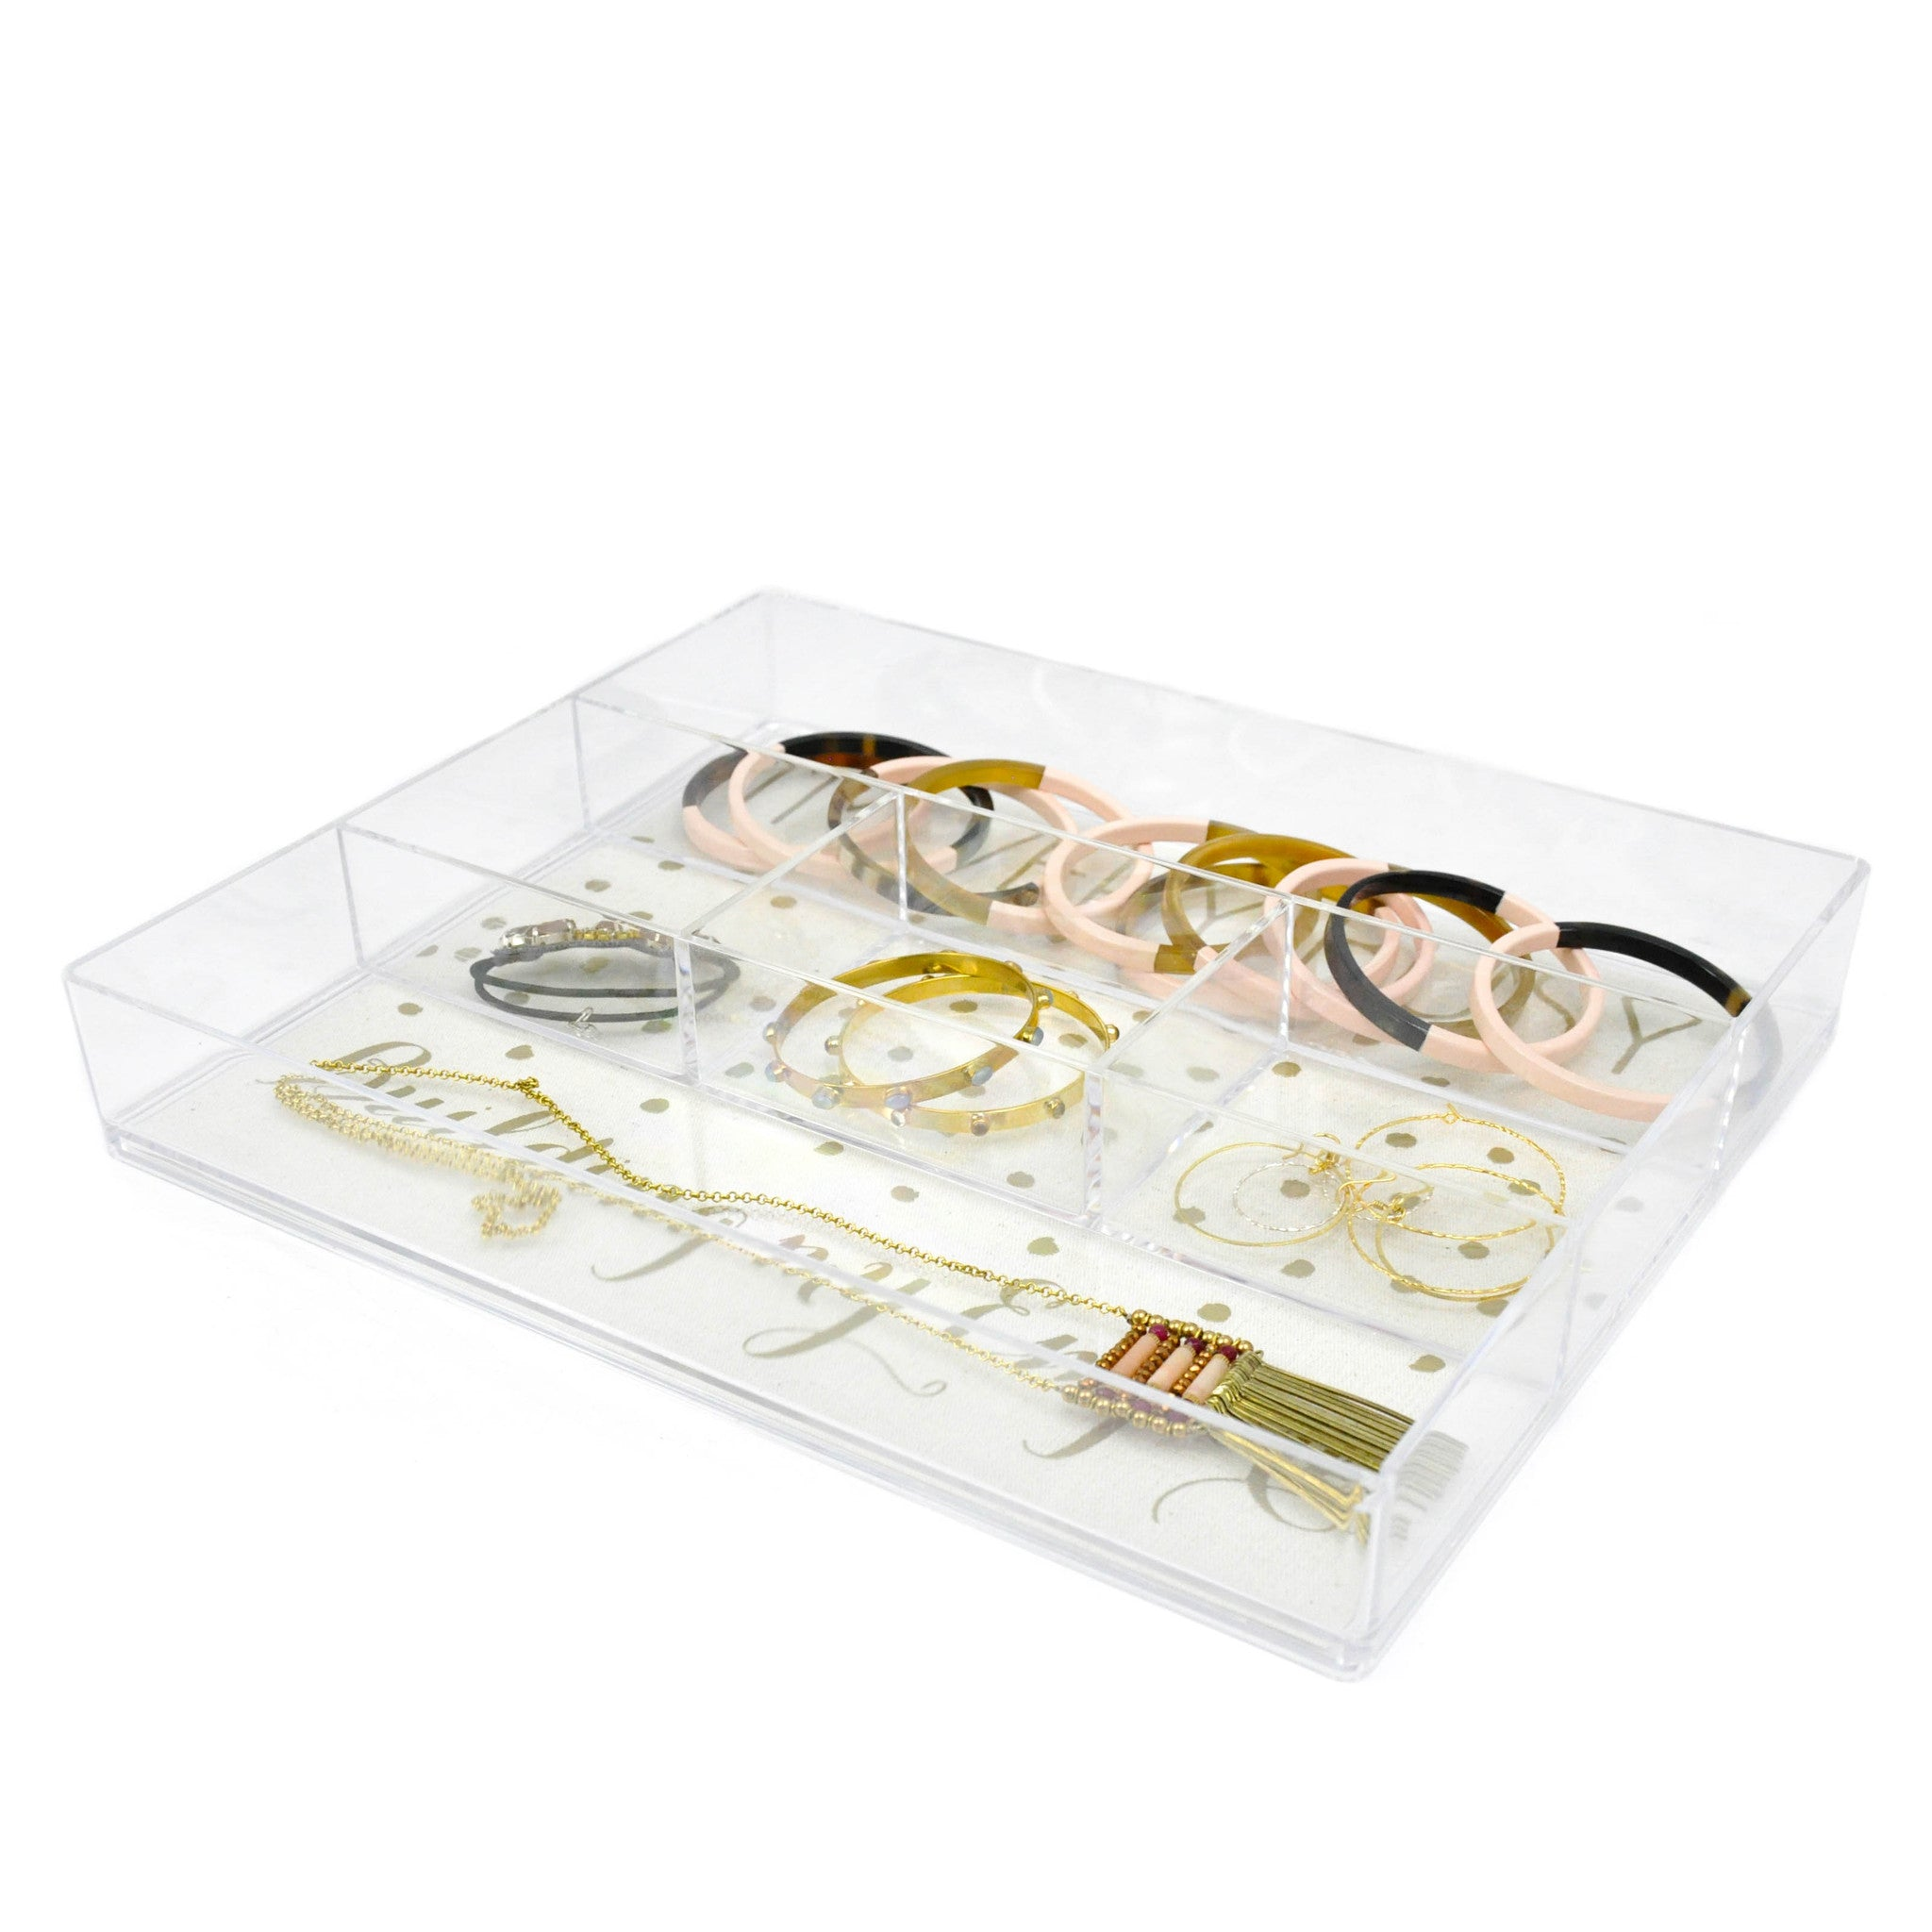 5 Compartment Jewelry Organizer - LoveEmme, Product_Type, Product_Vendor